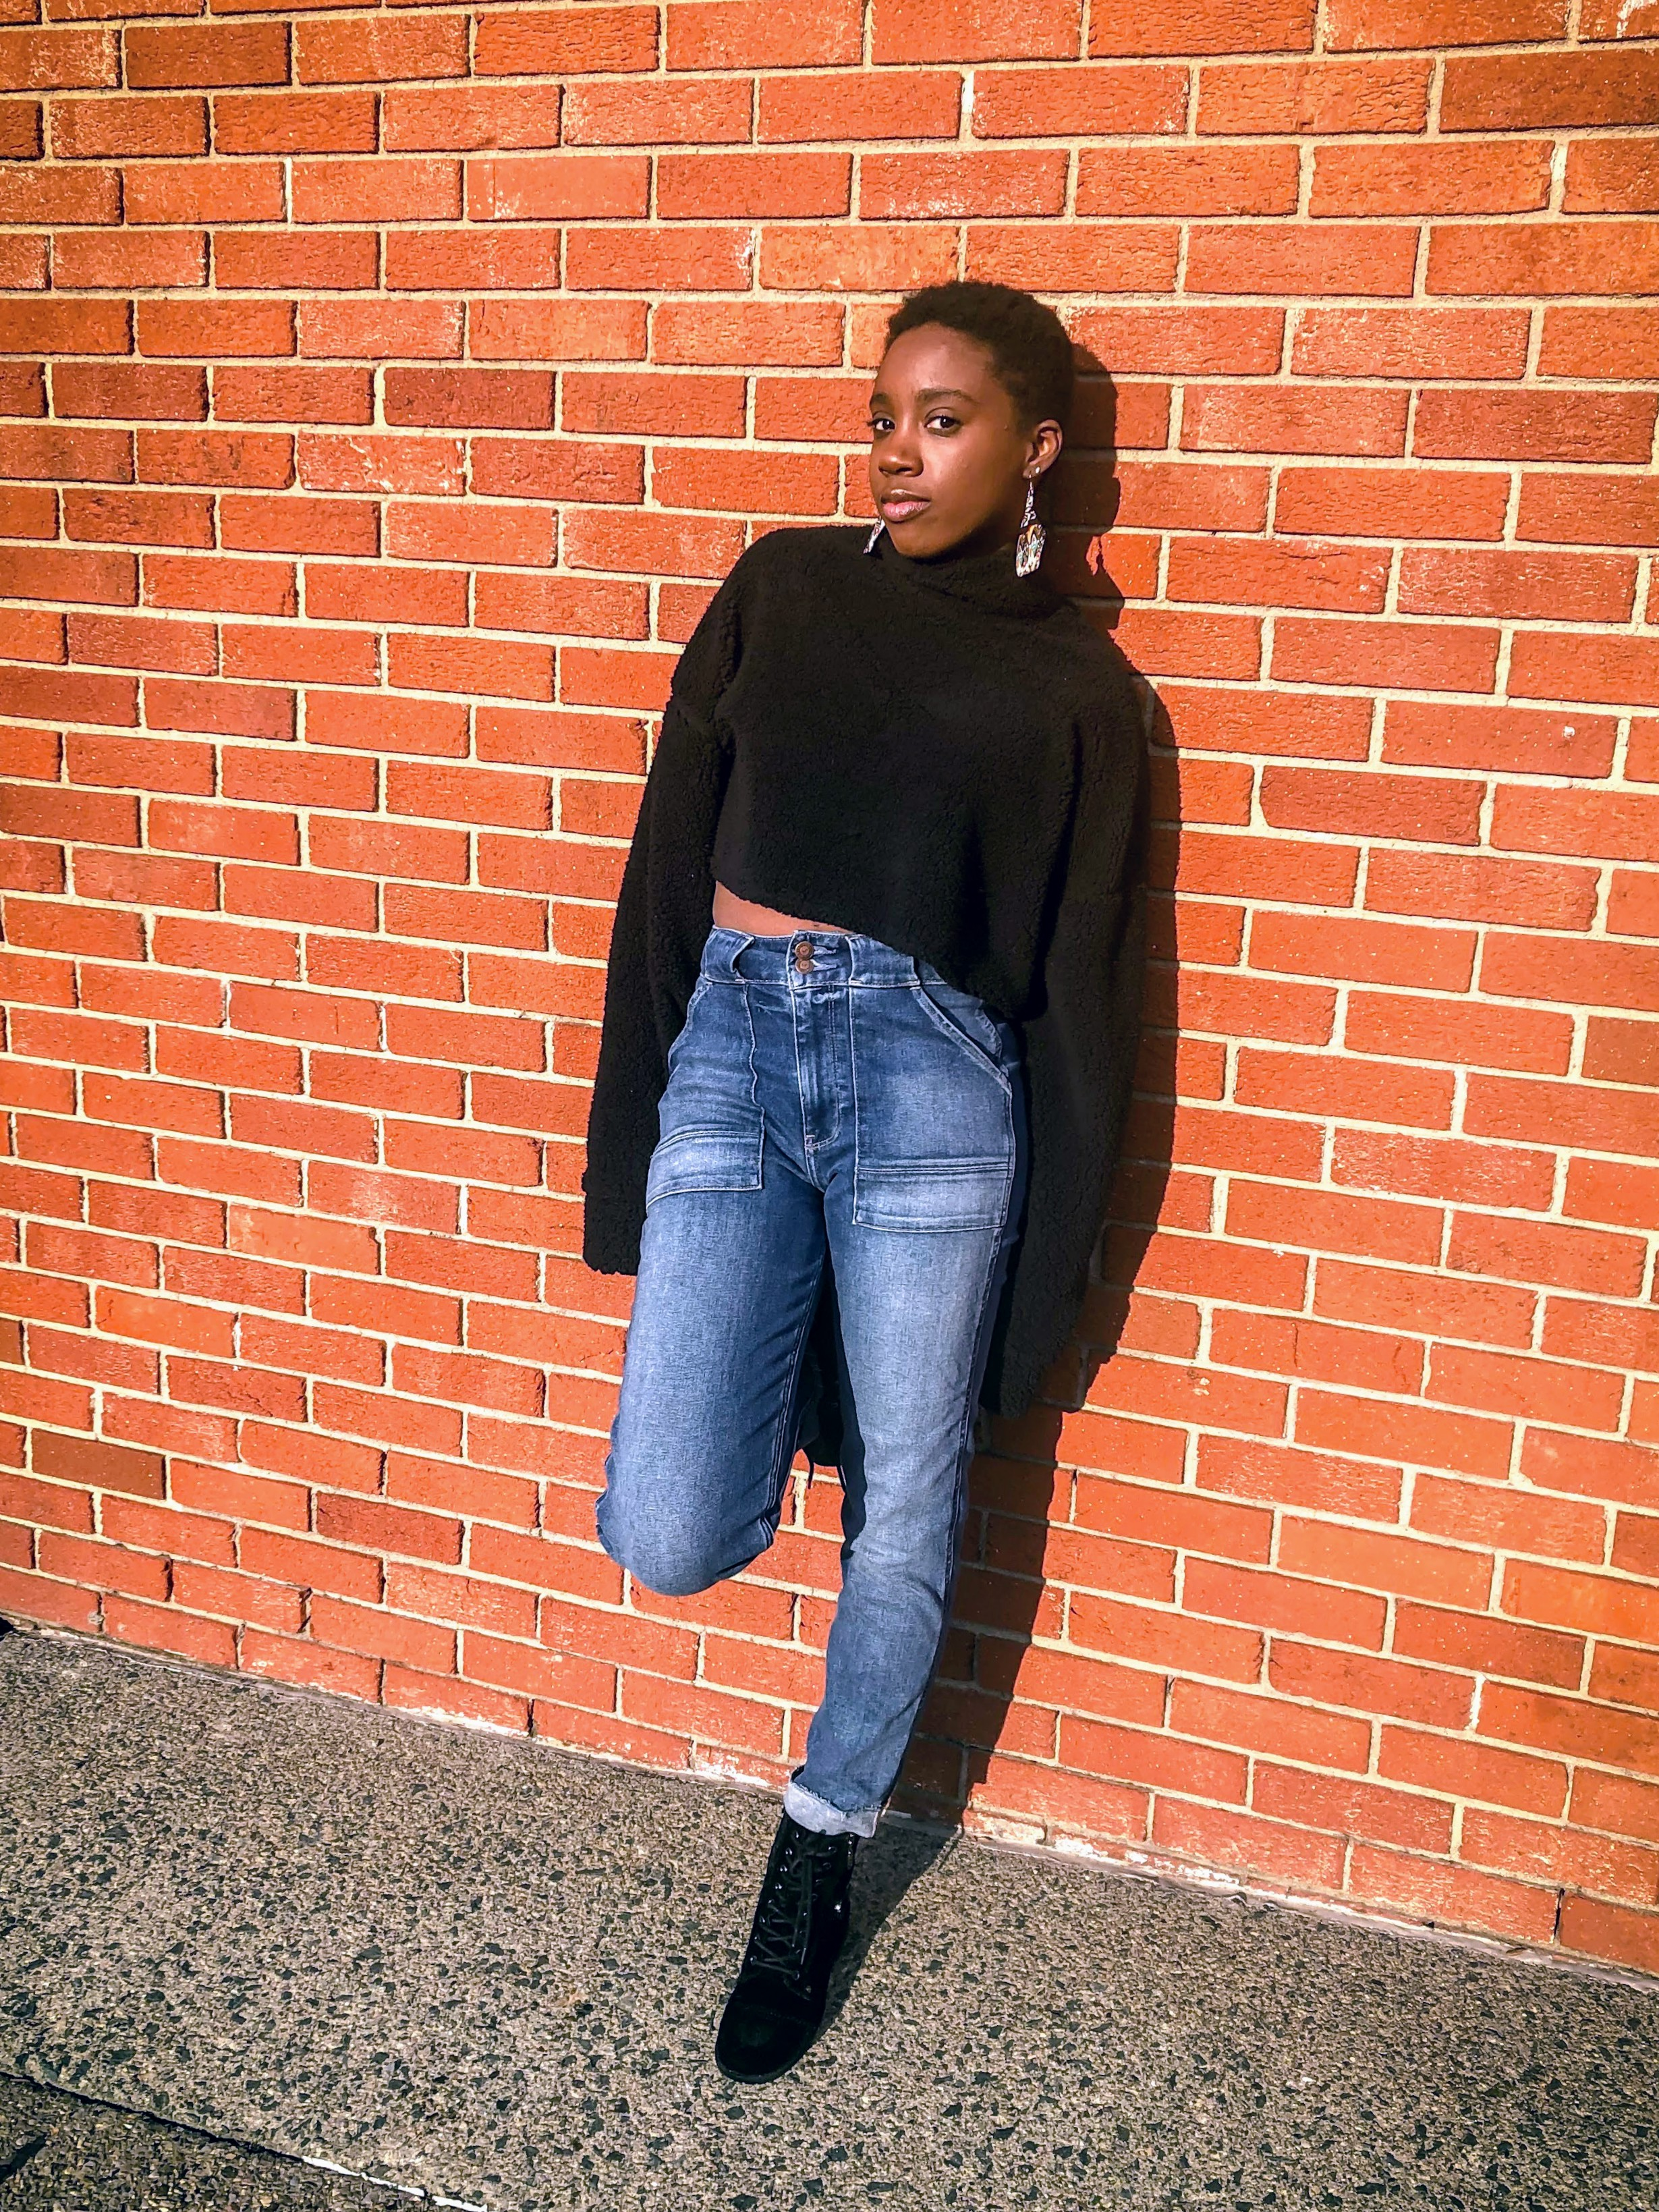 Missguided: Teddy High Neck Cropped Sweater - Hollister Mom JeansGuess Boots